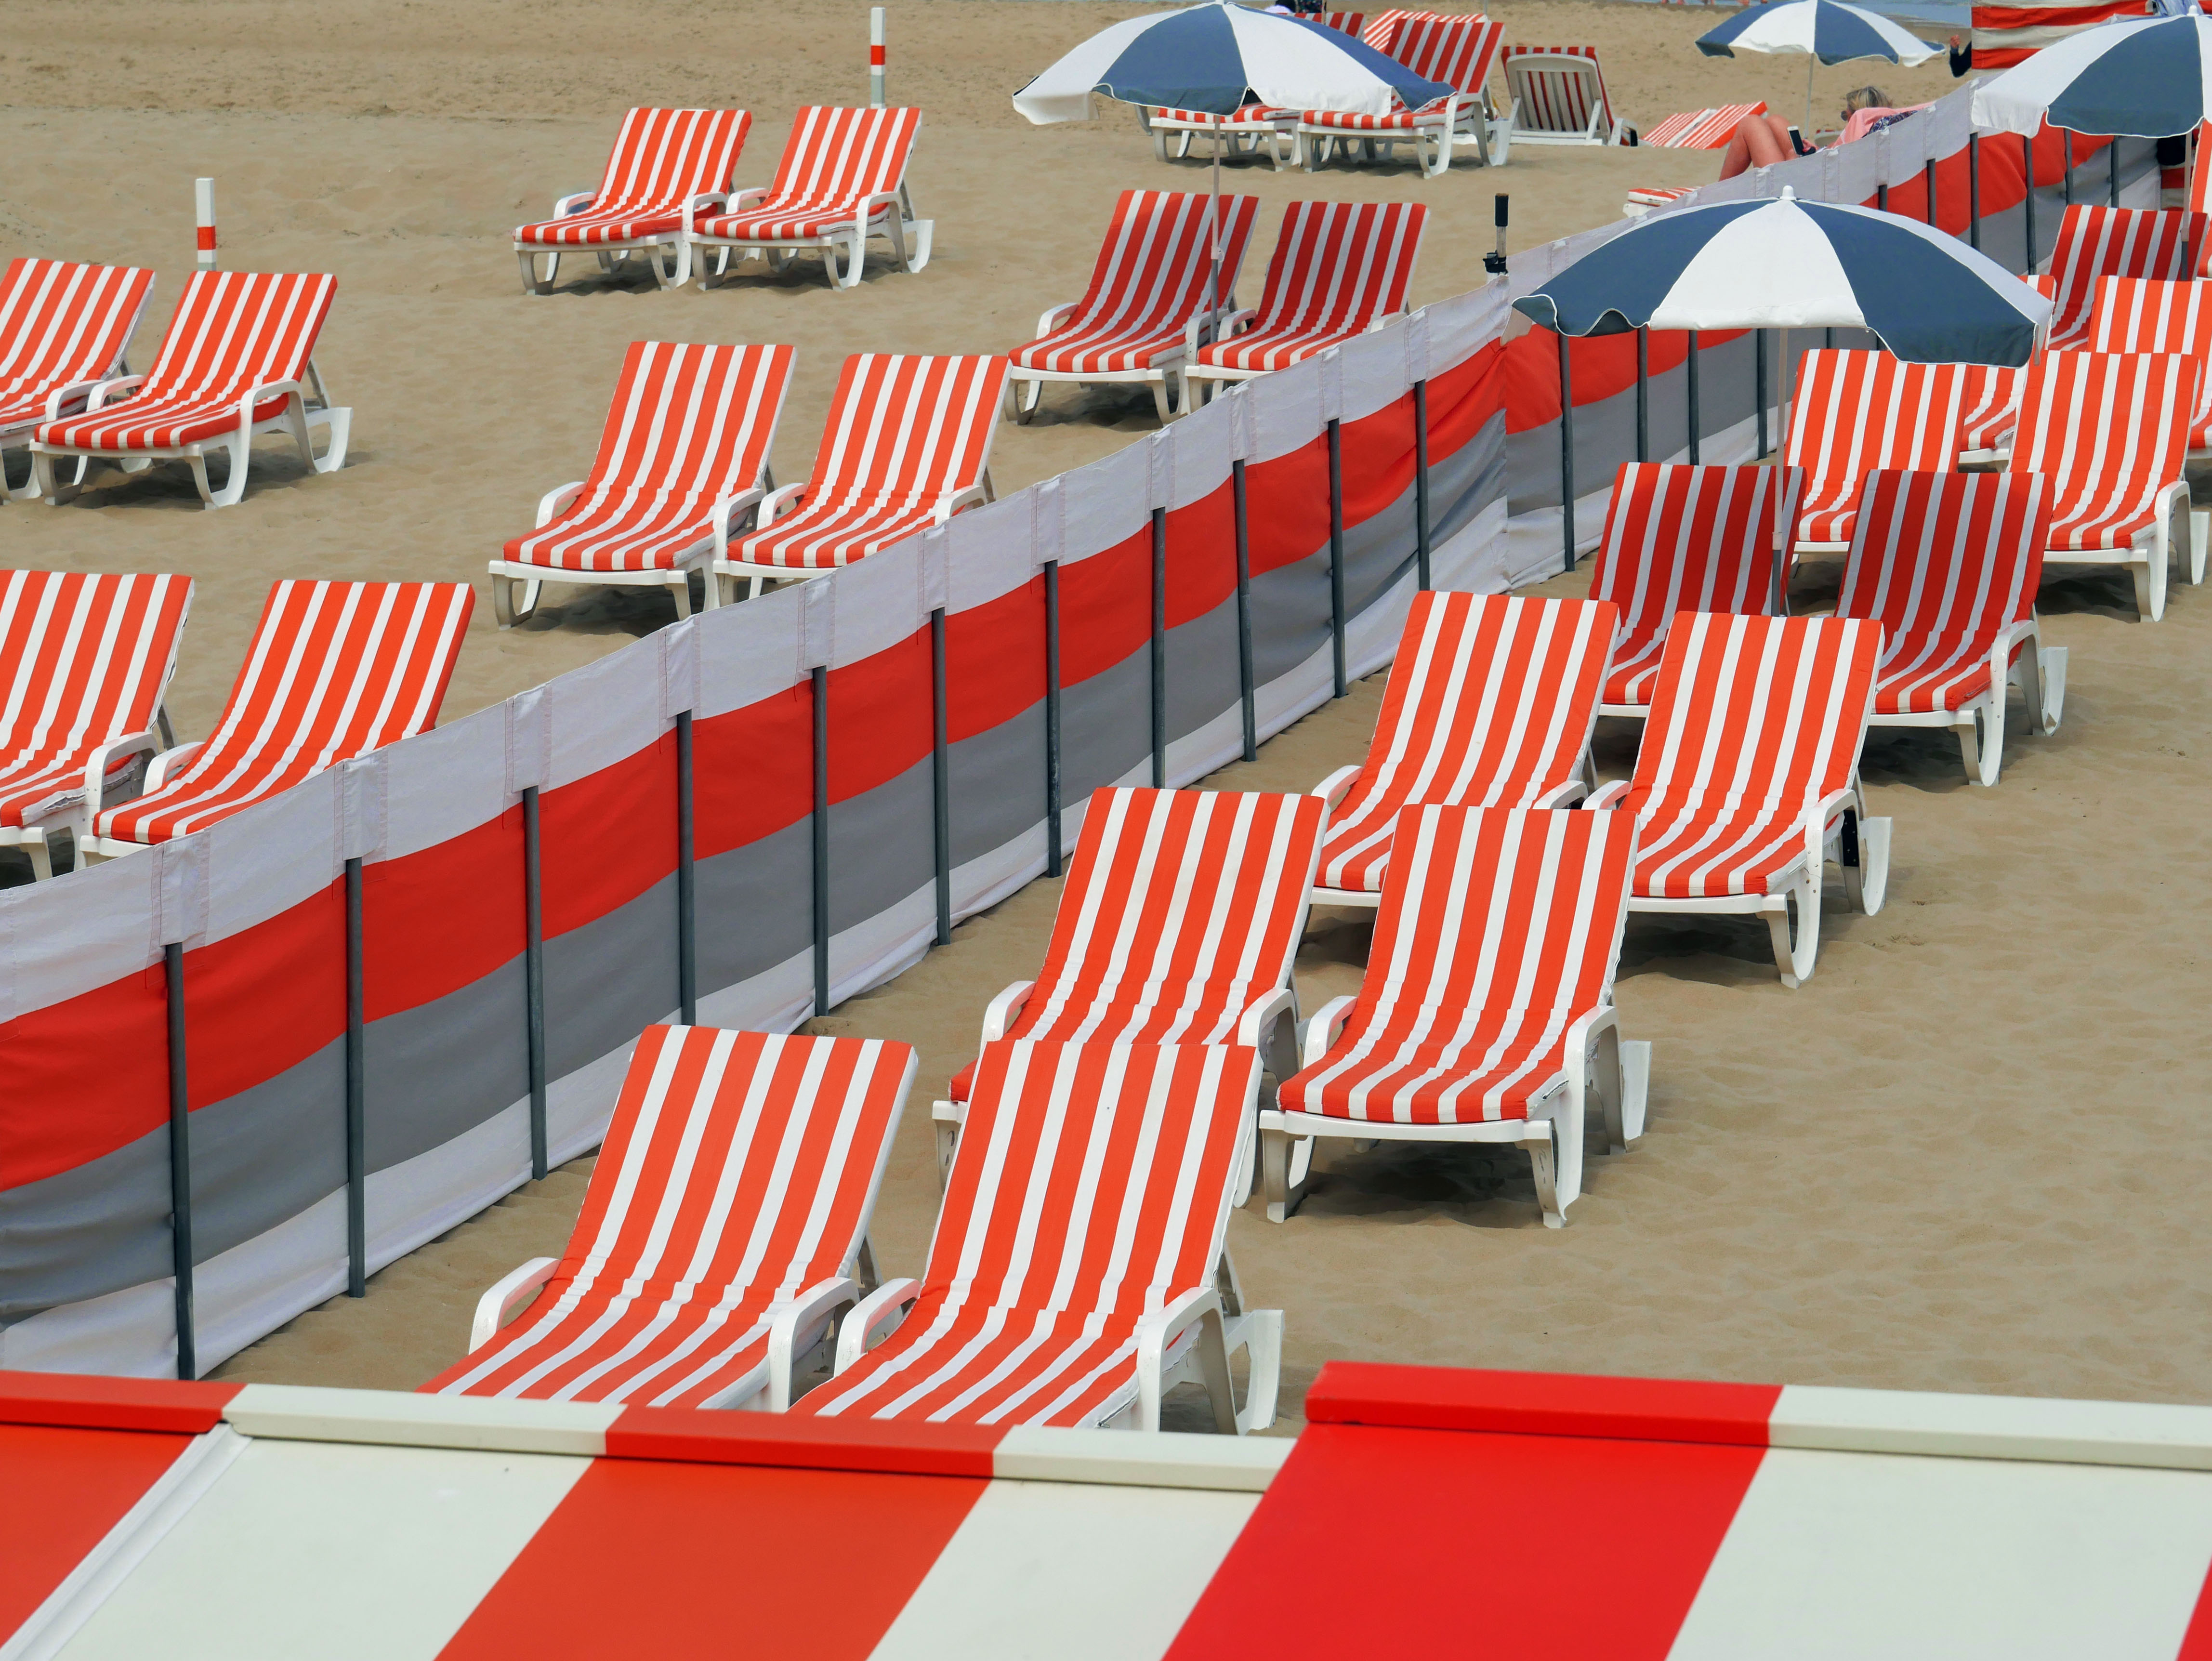 Rows of empty white and orange sunbeds on a beach in Belgium